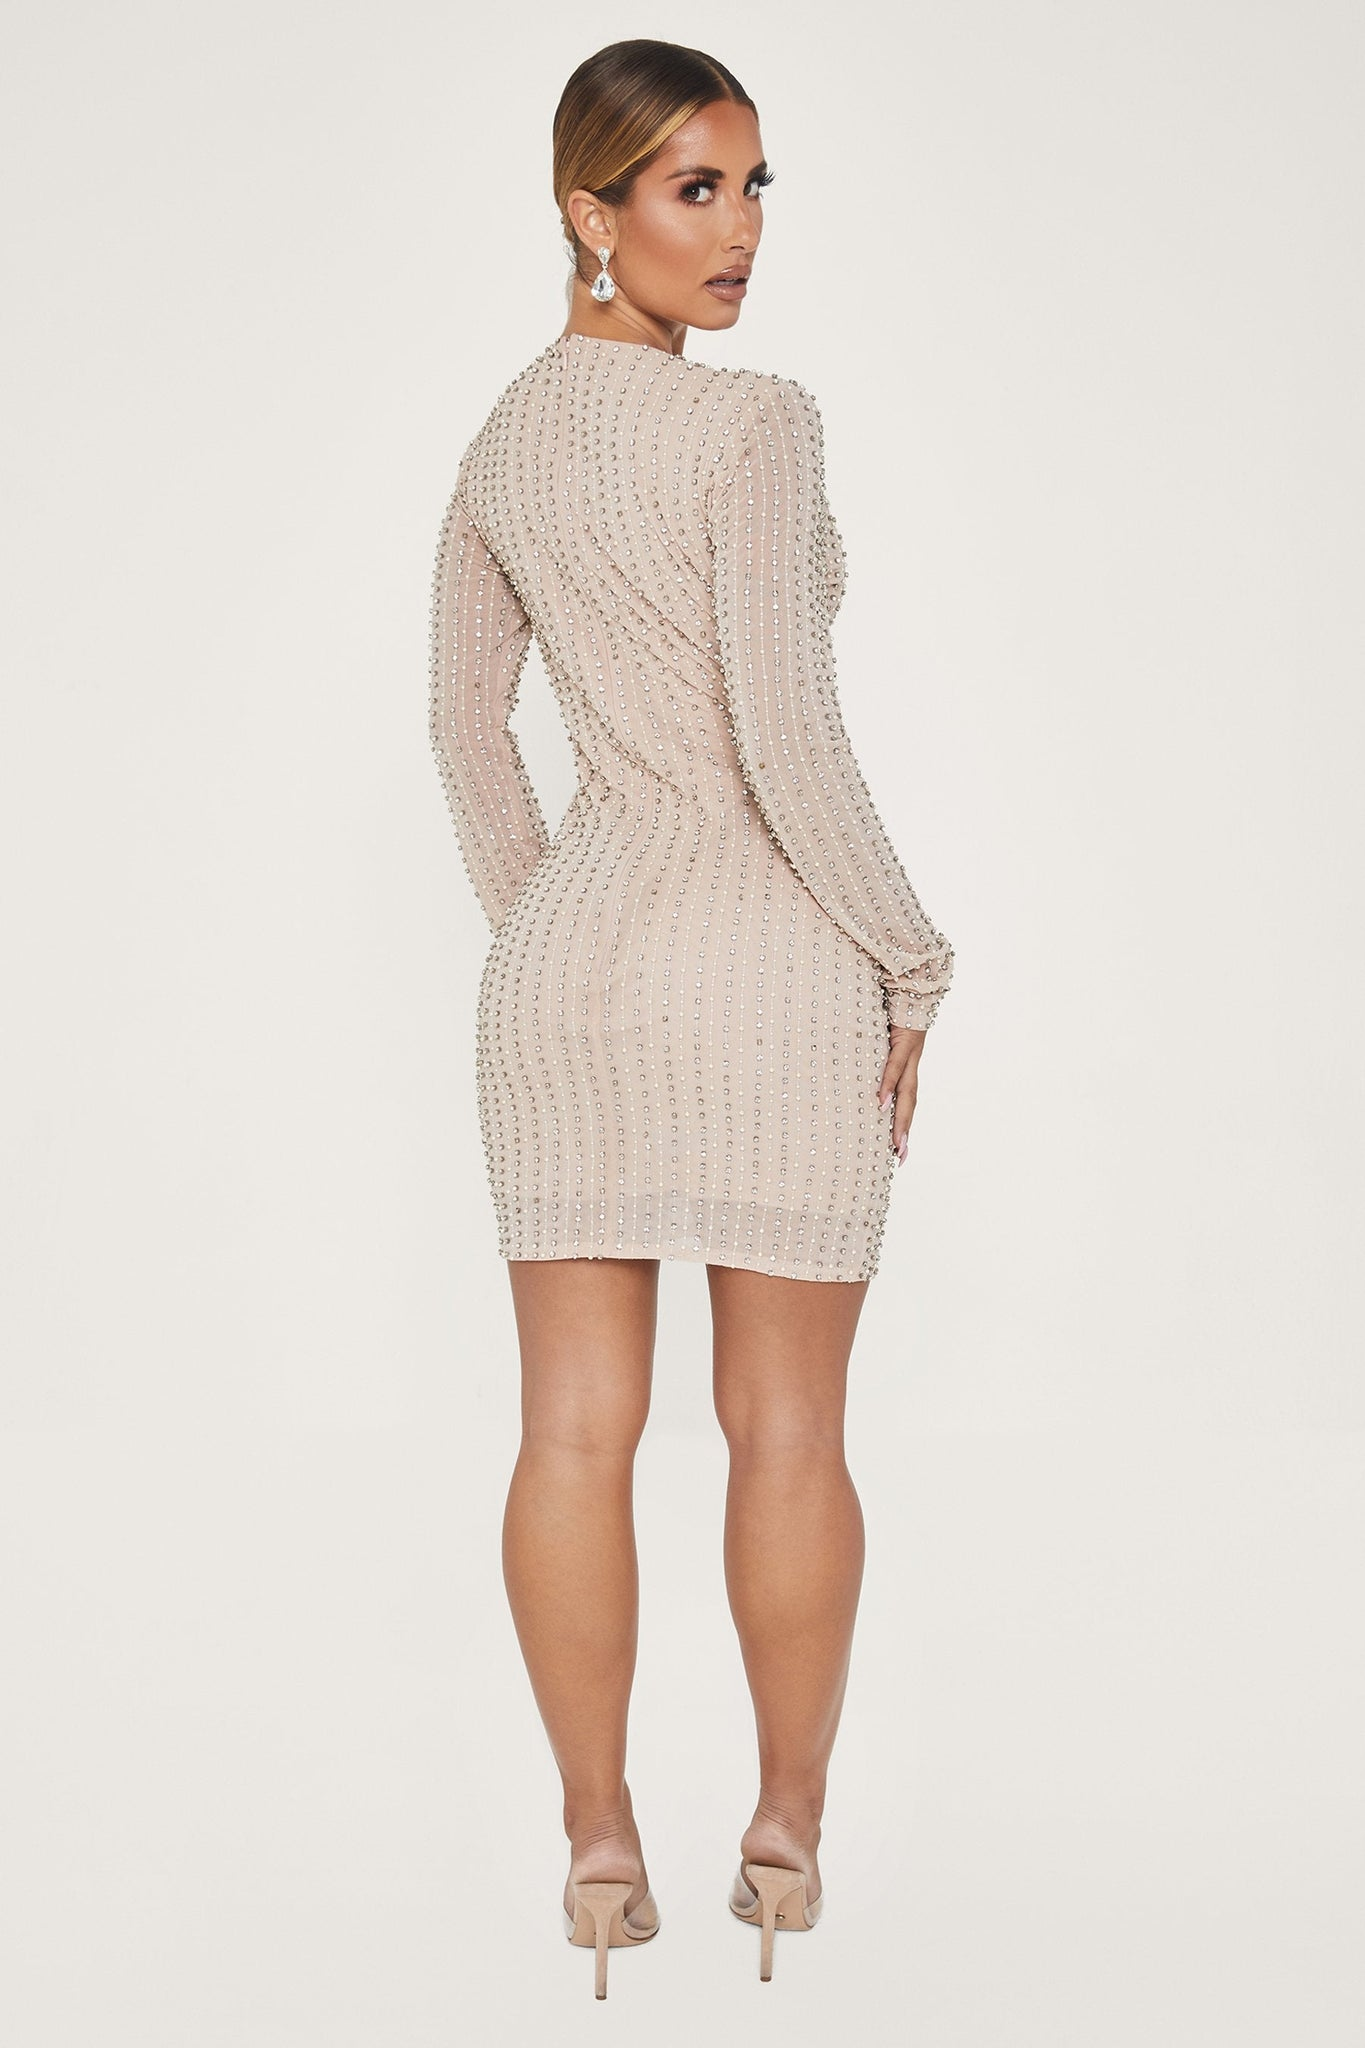 Rada Embellished Long Sleeve Bodycon Dress - Nude - MESHKI